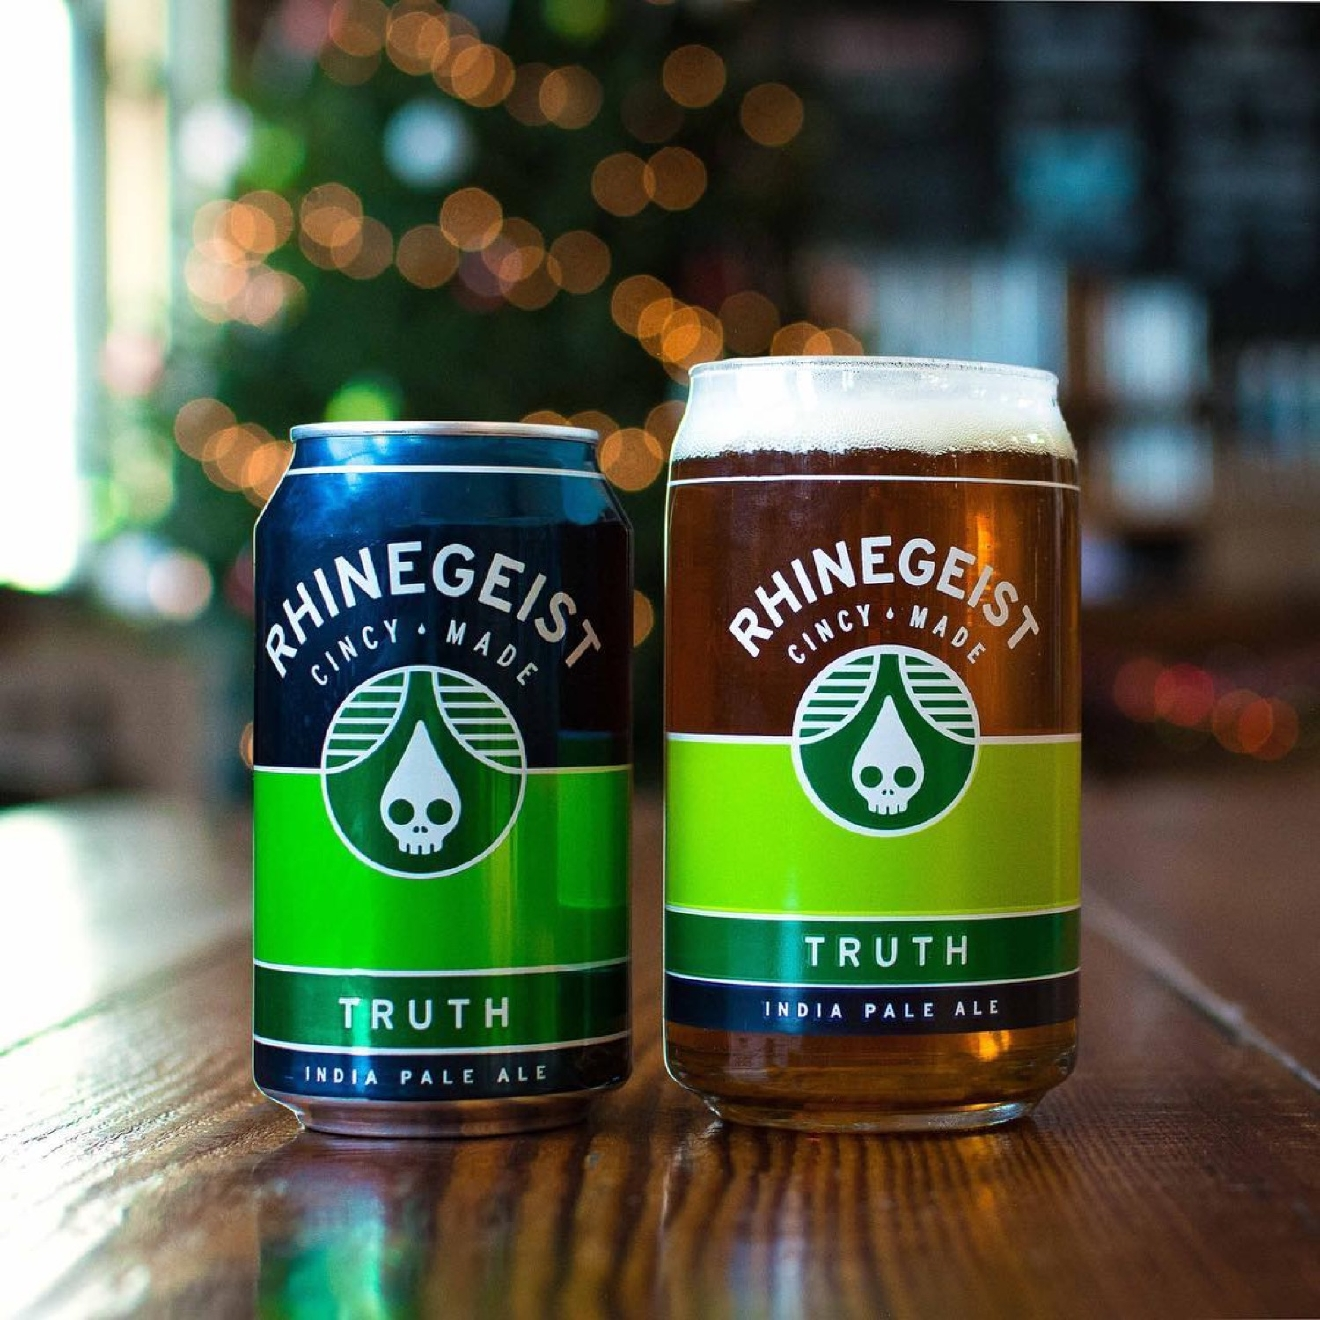 TRUTH by Rhinegeist Brewery / This hoppy IPA has citrus notes that'll mitigate the bitterness. / Image courtesy of Rhinegeist  Brewery  // Published: 1.10.17